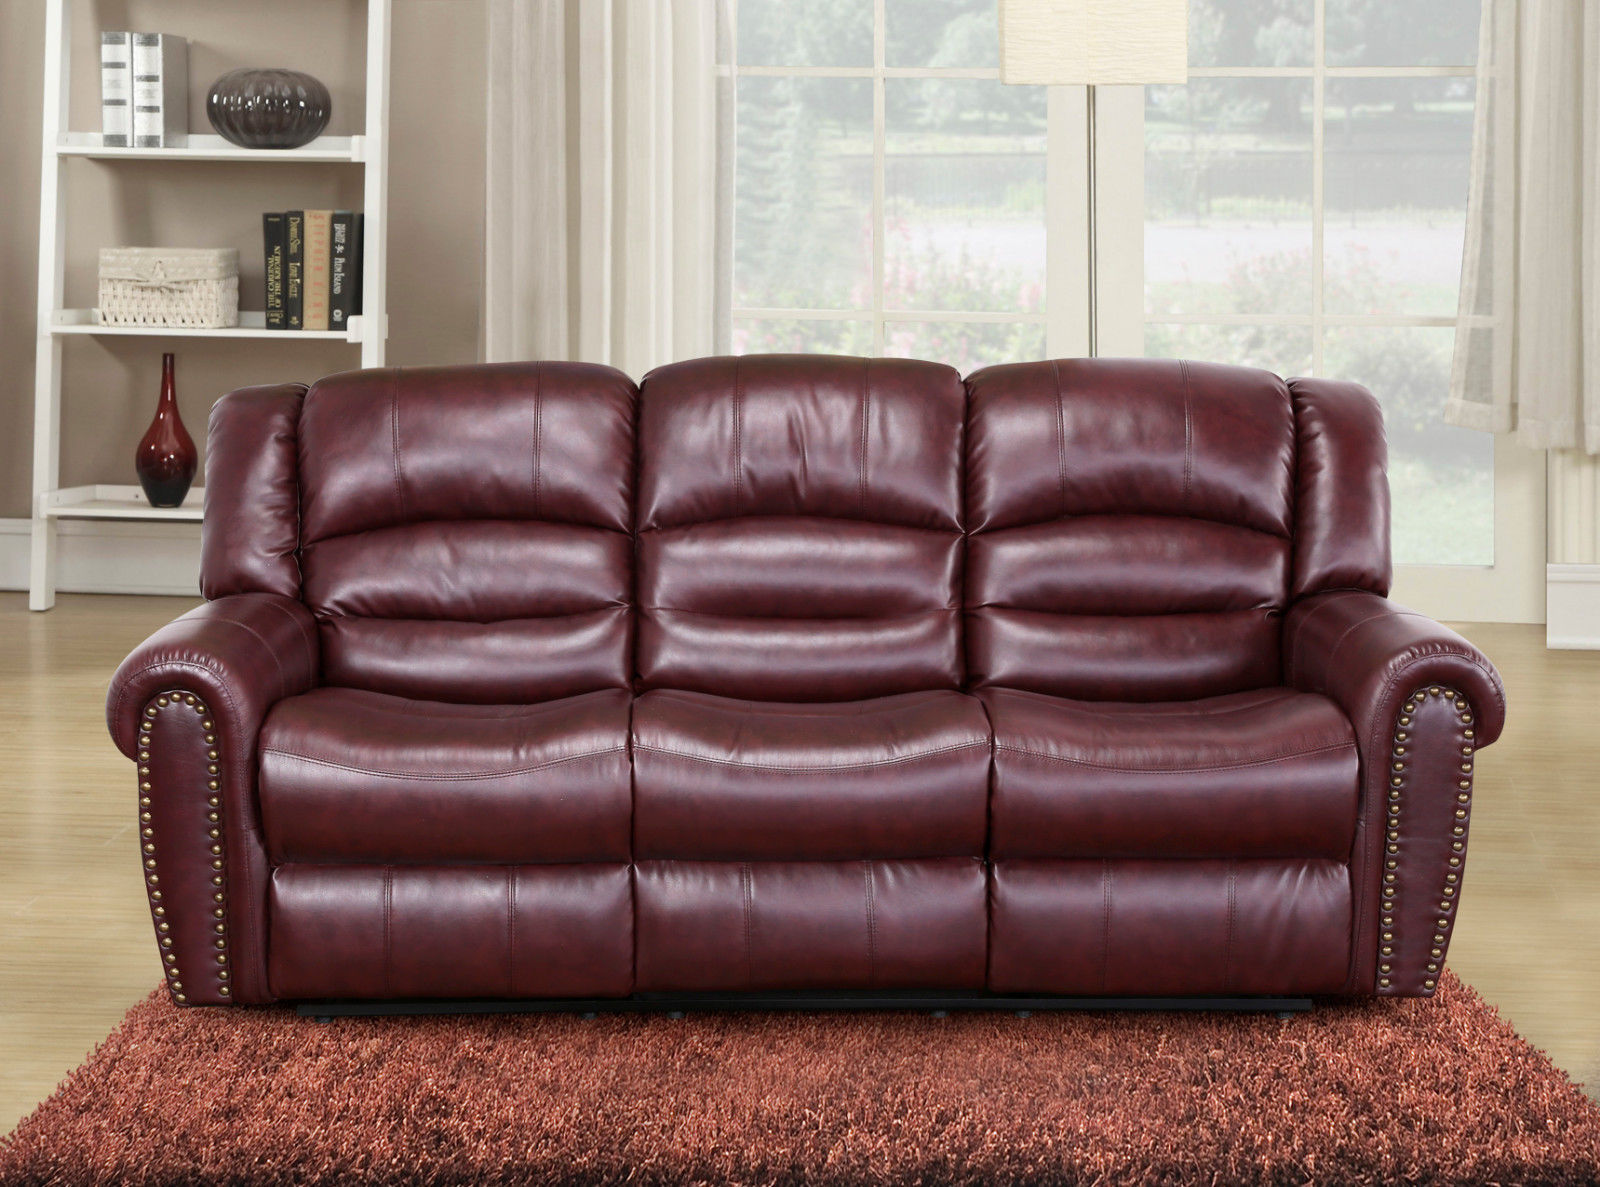 Meridian 686 Bonded Leather Living Room Sofa Set 2pc. Burgundy Traditional Style